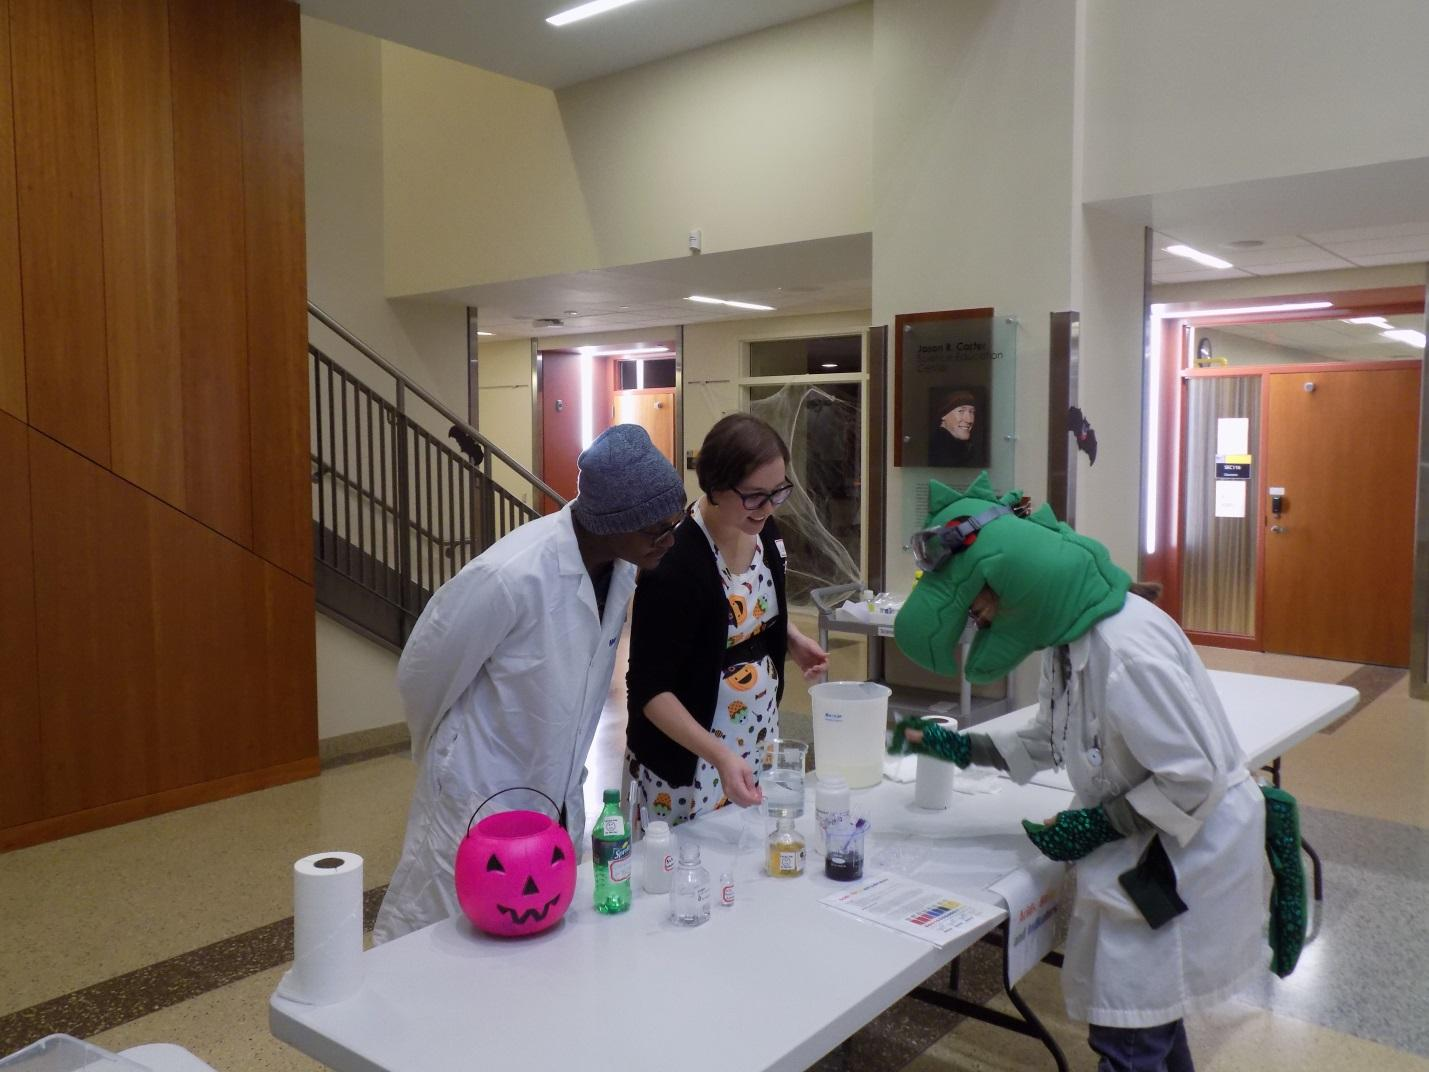 Scares, spooks and skeletons at Metro State's scientific Halloween